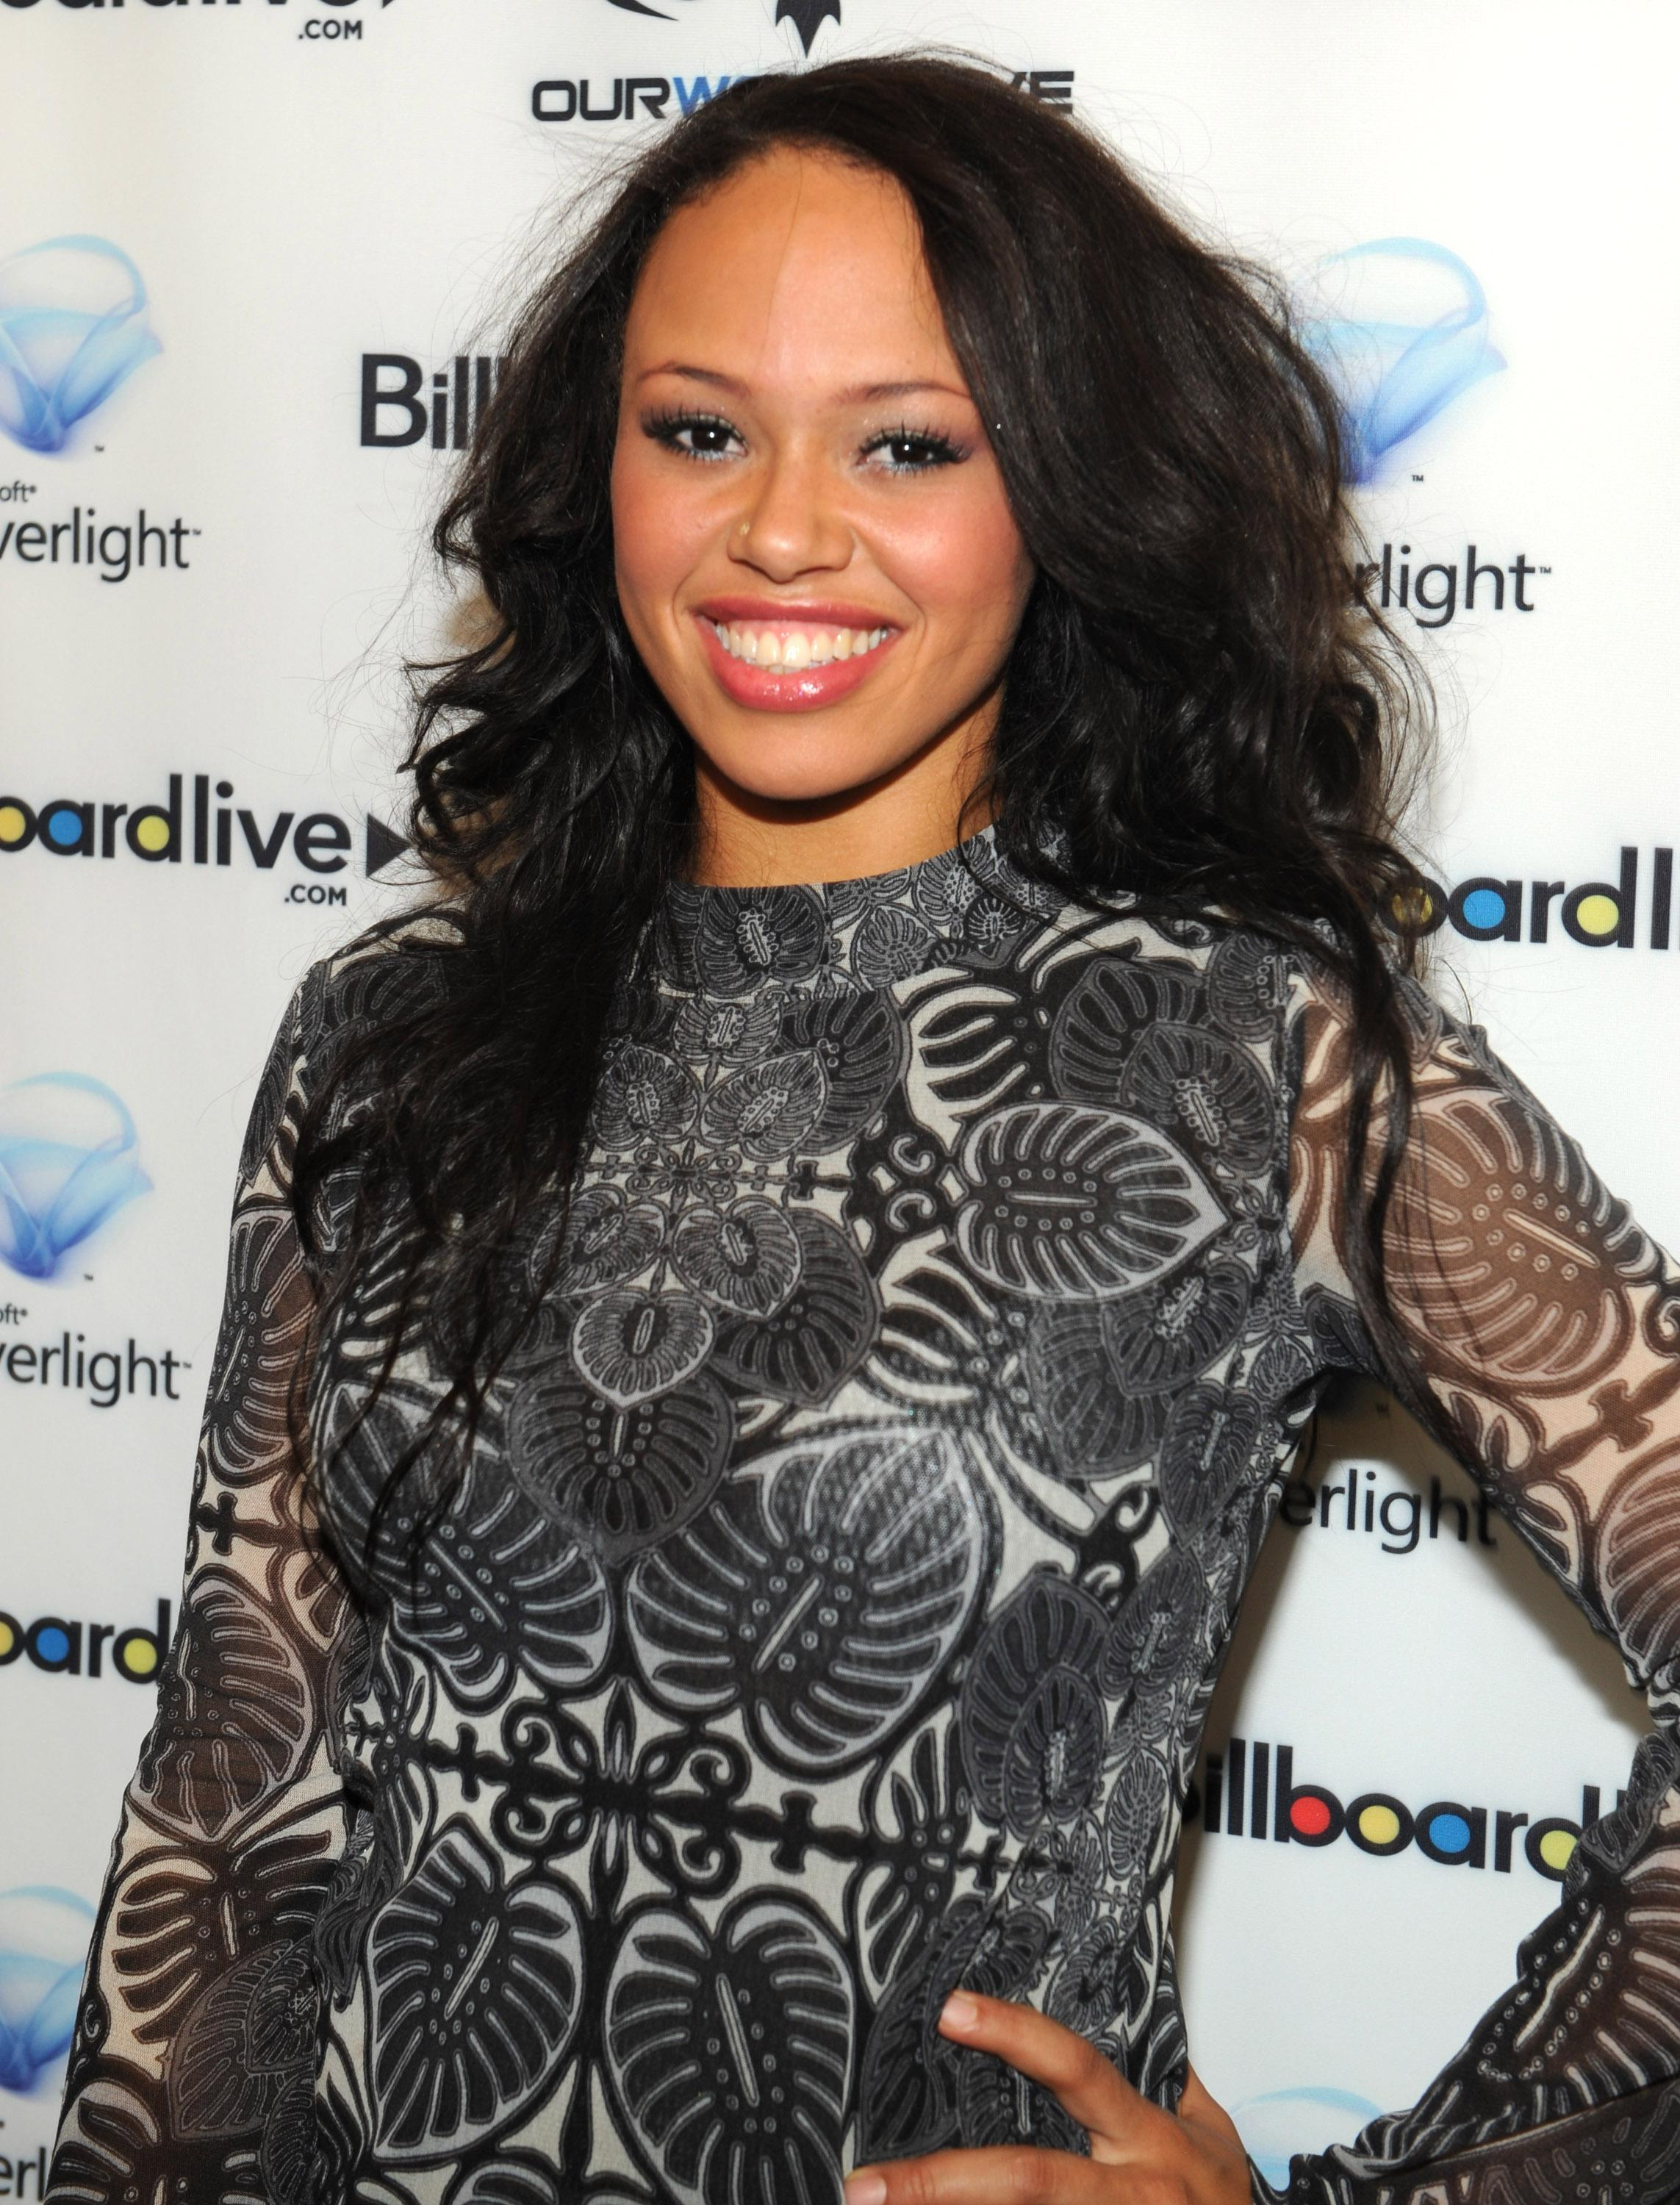 Alicia Keys And Friends On BillboardLive.com, Free HD Concert Live From The Apollo - Backstage